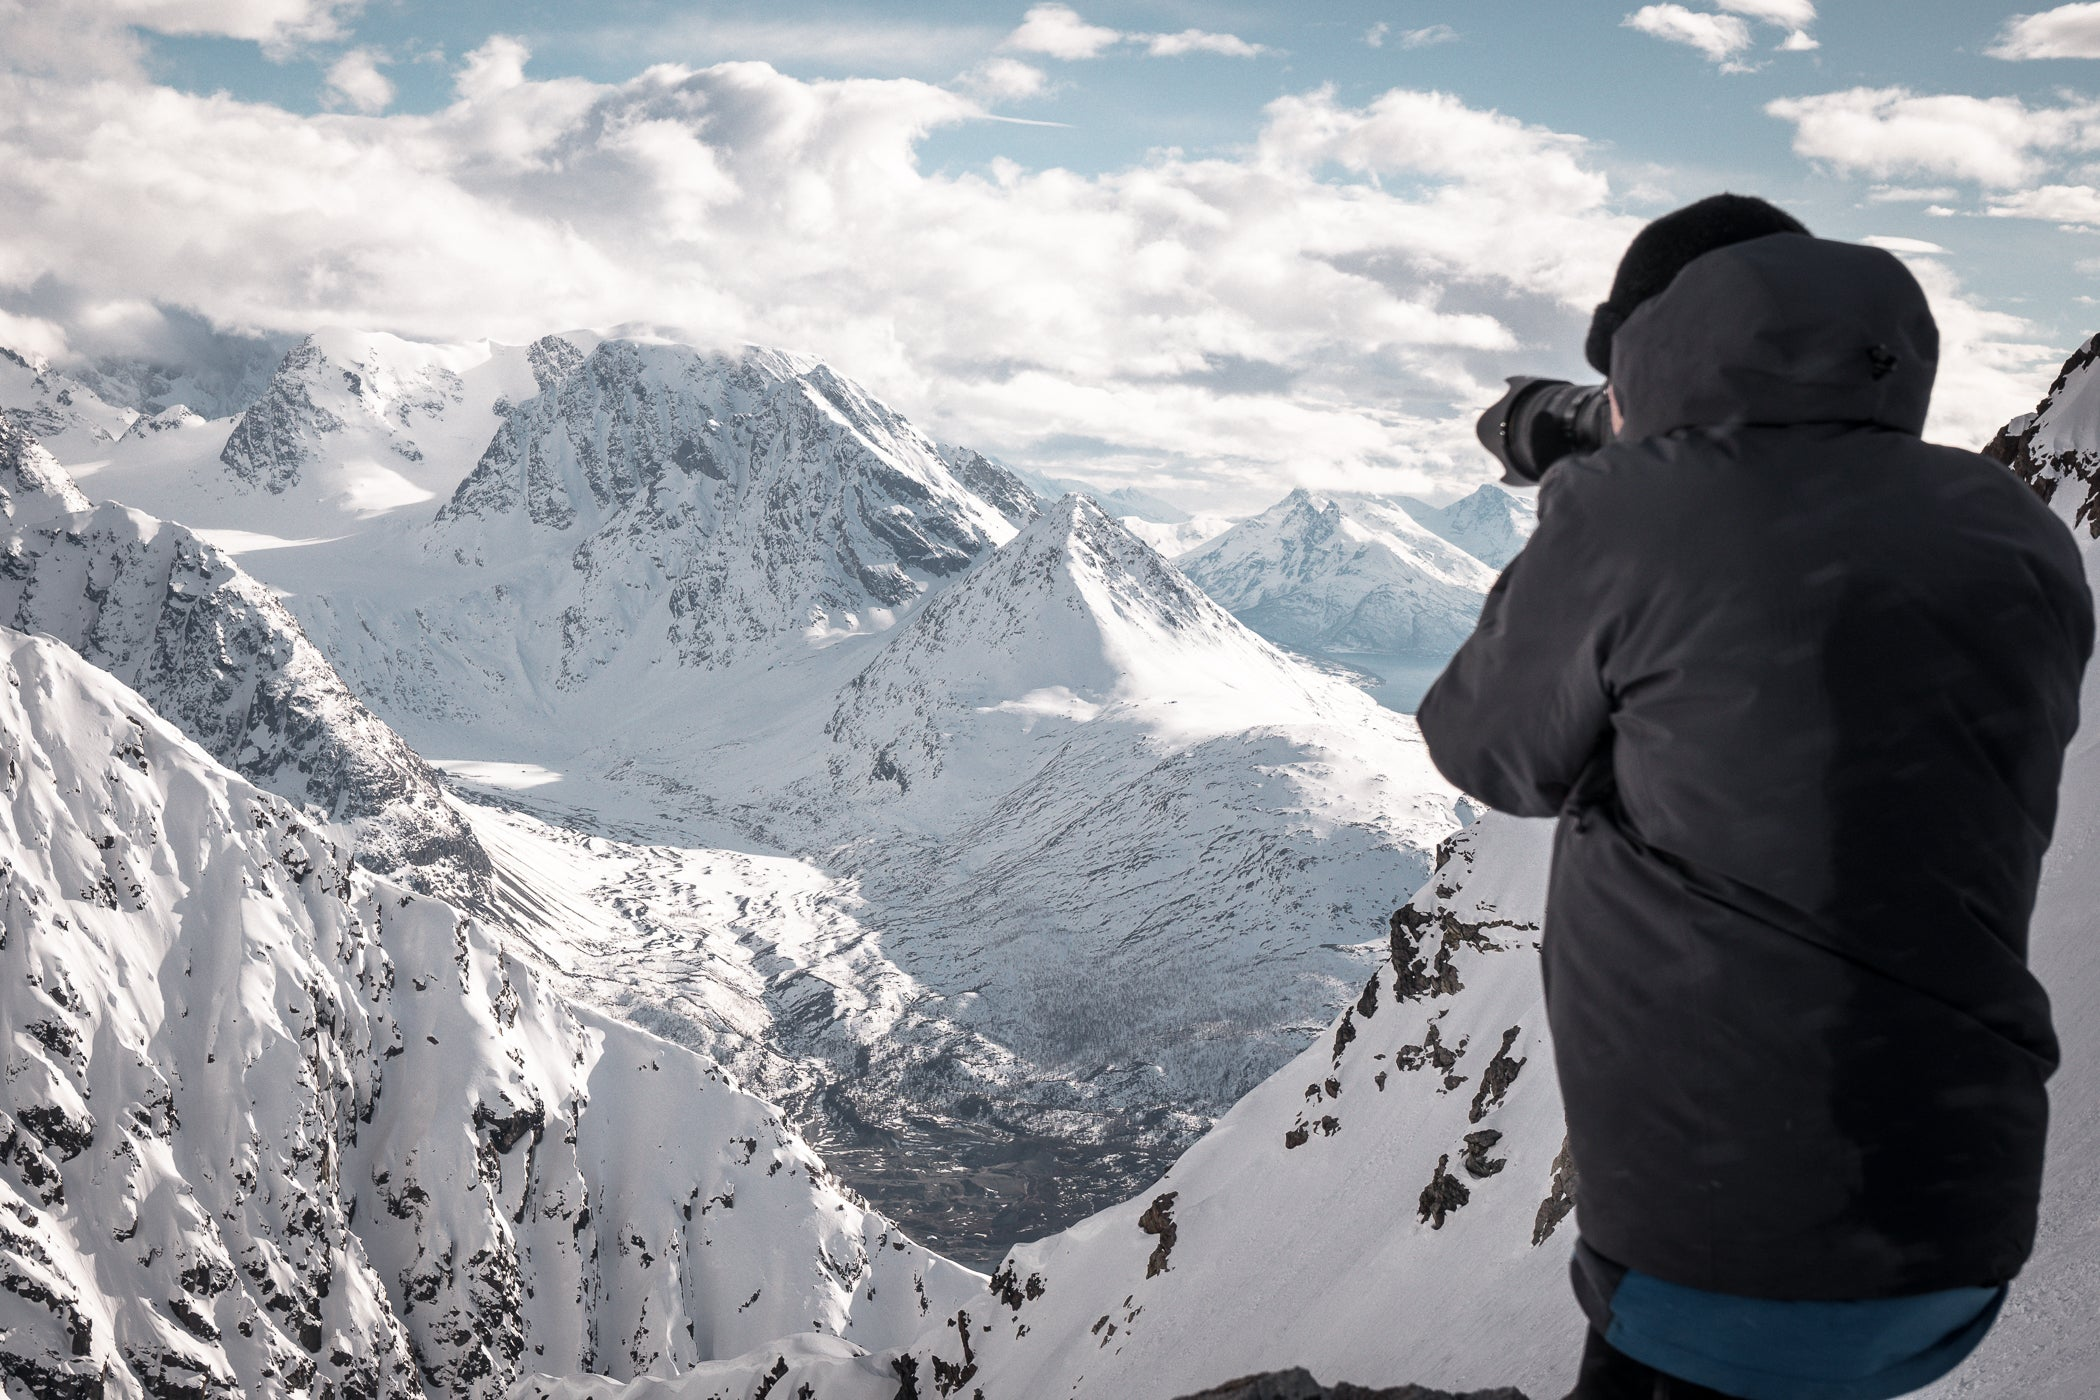 Photographer shooting the snowy mountains